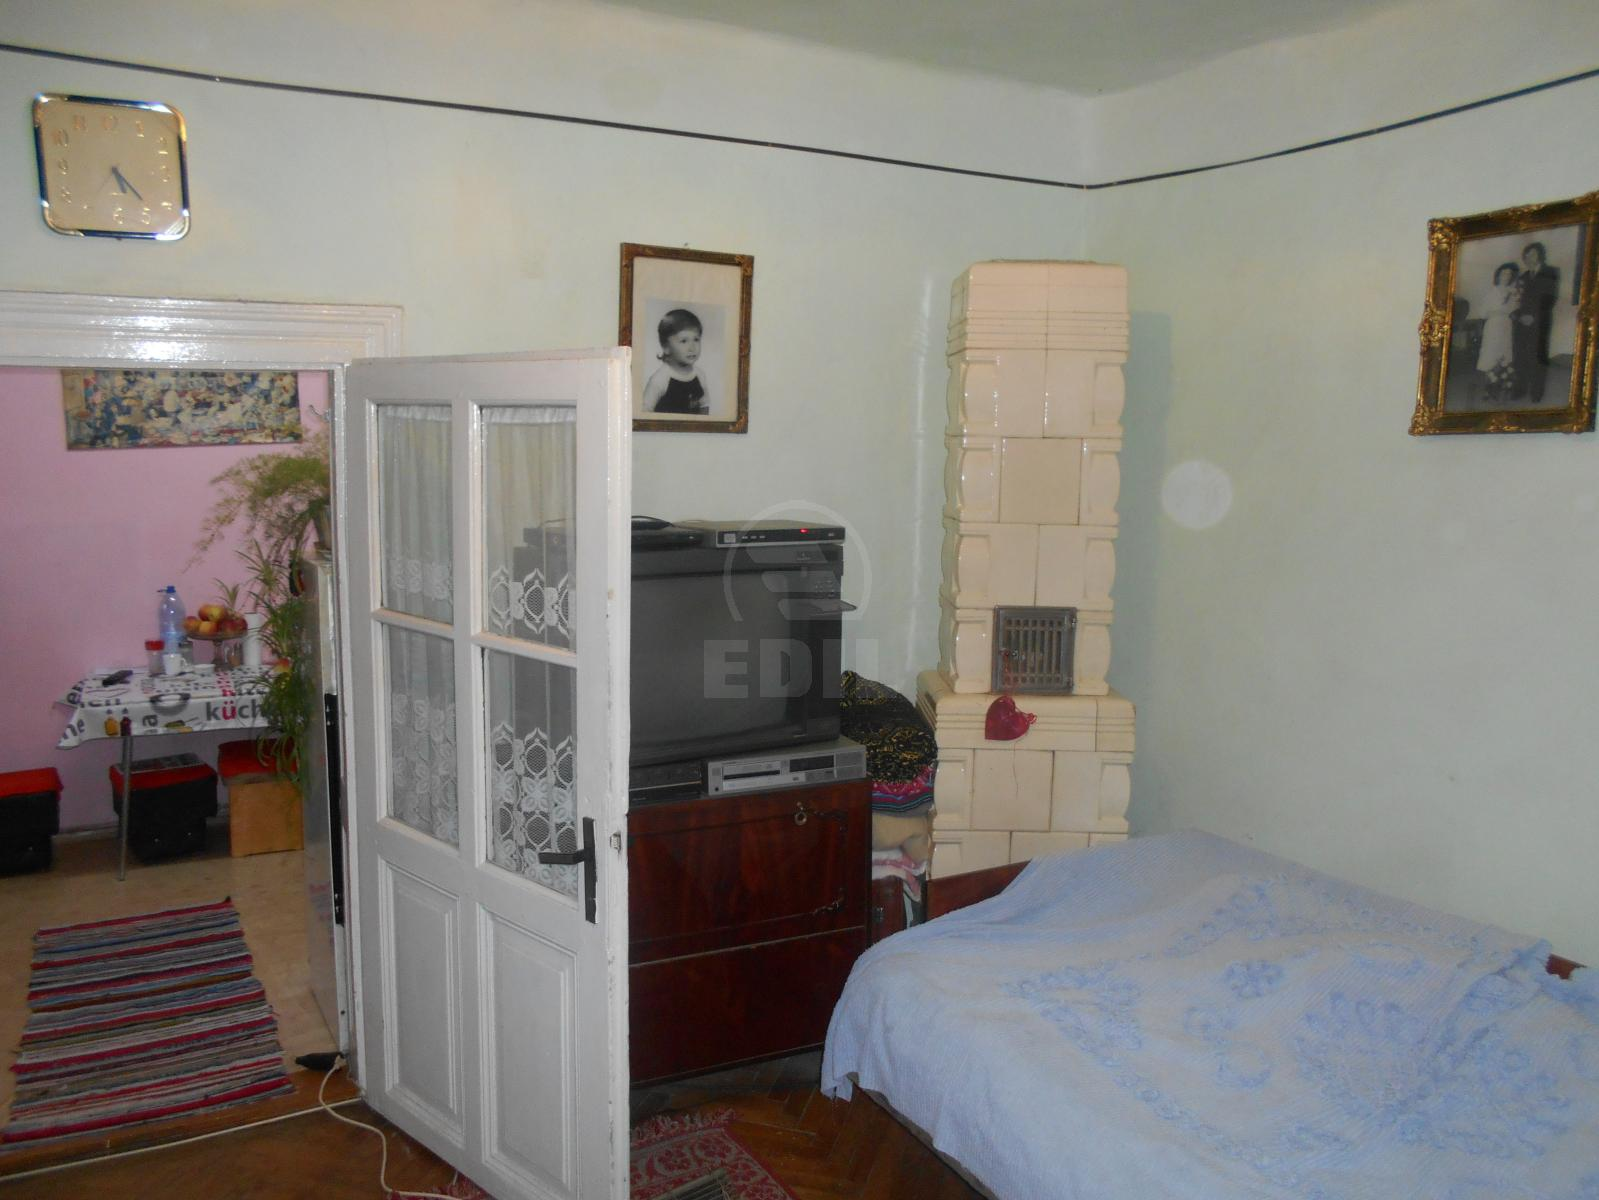 House for sale 3 rooms, CACJ271846-6